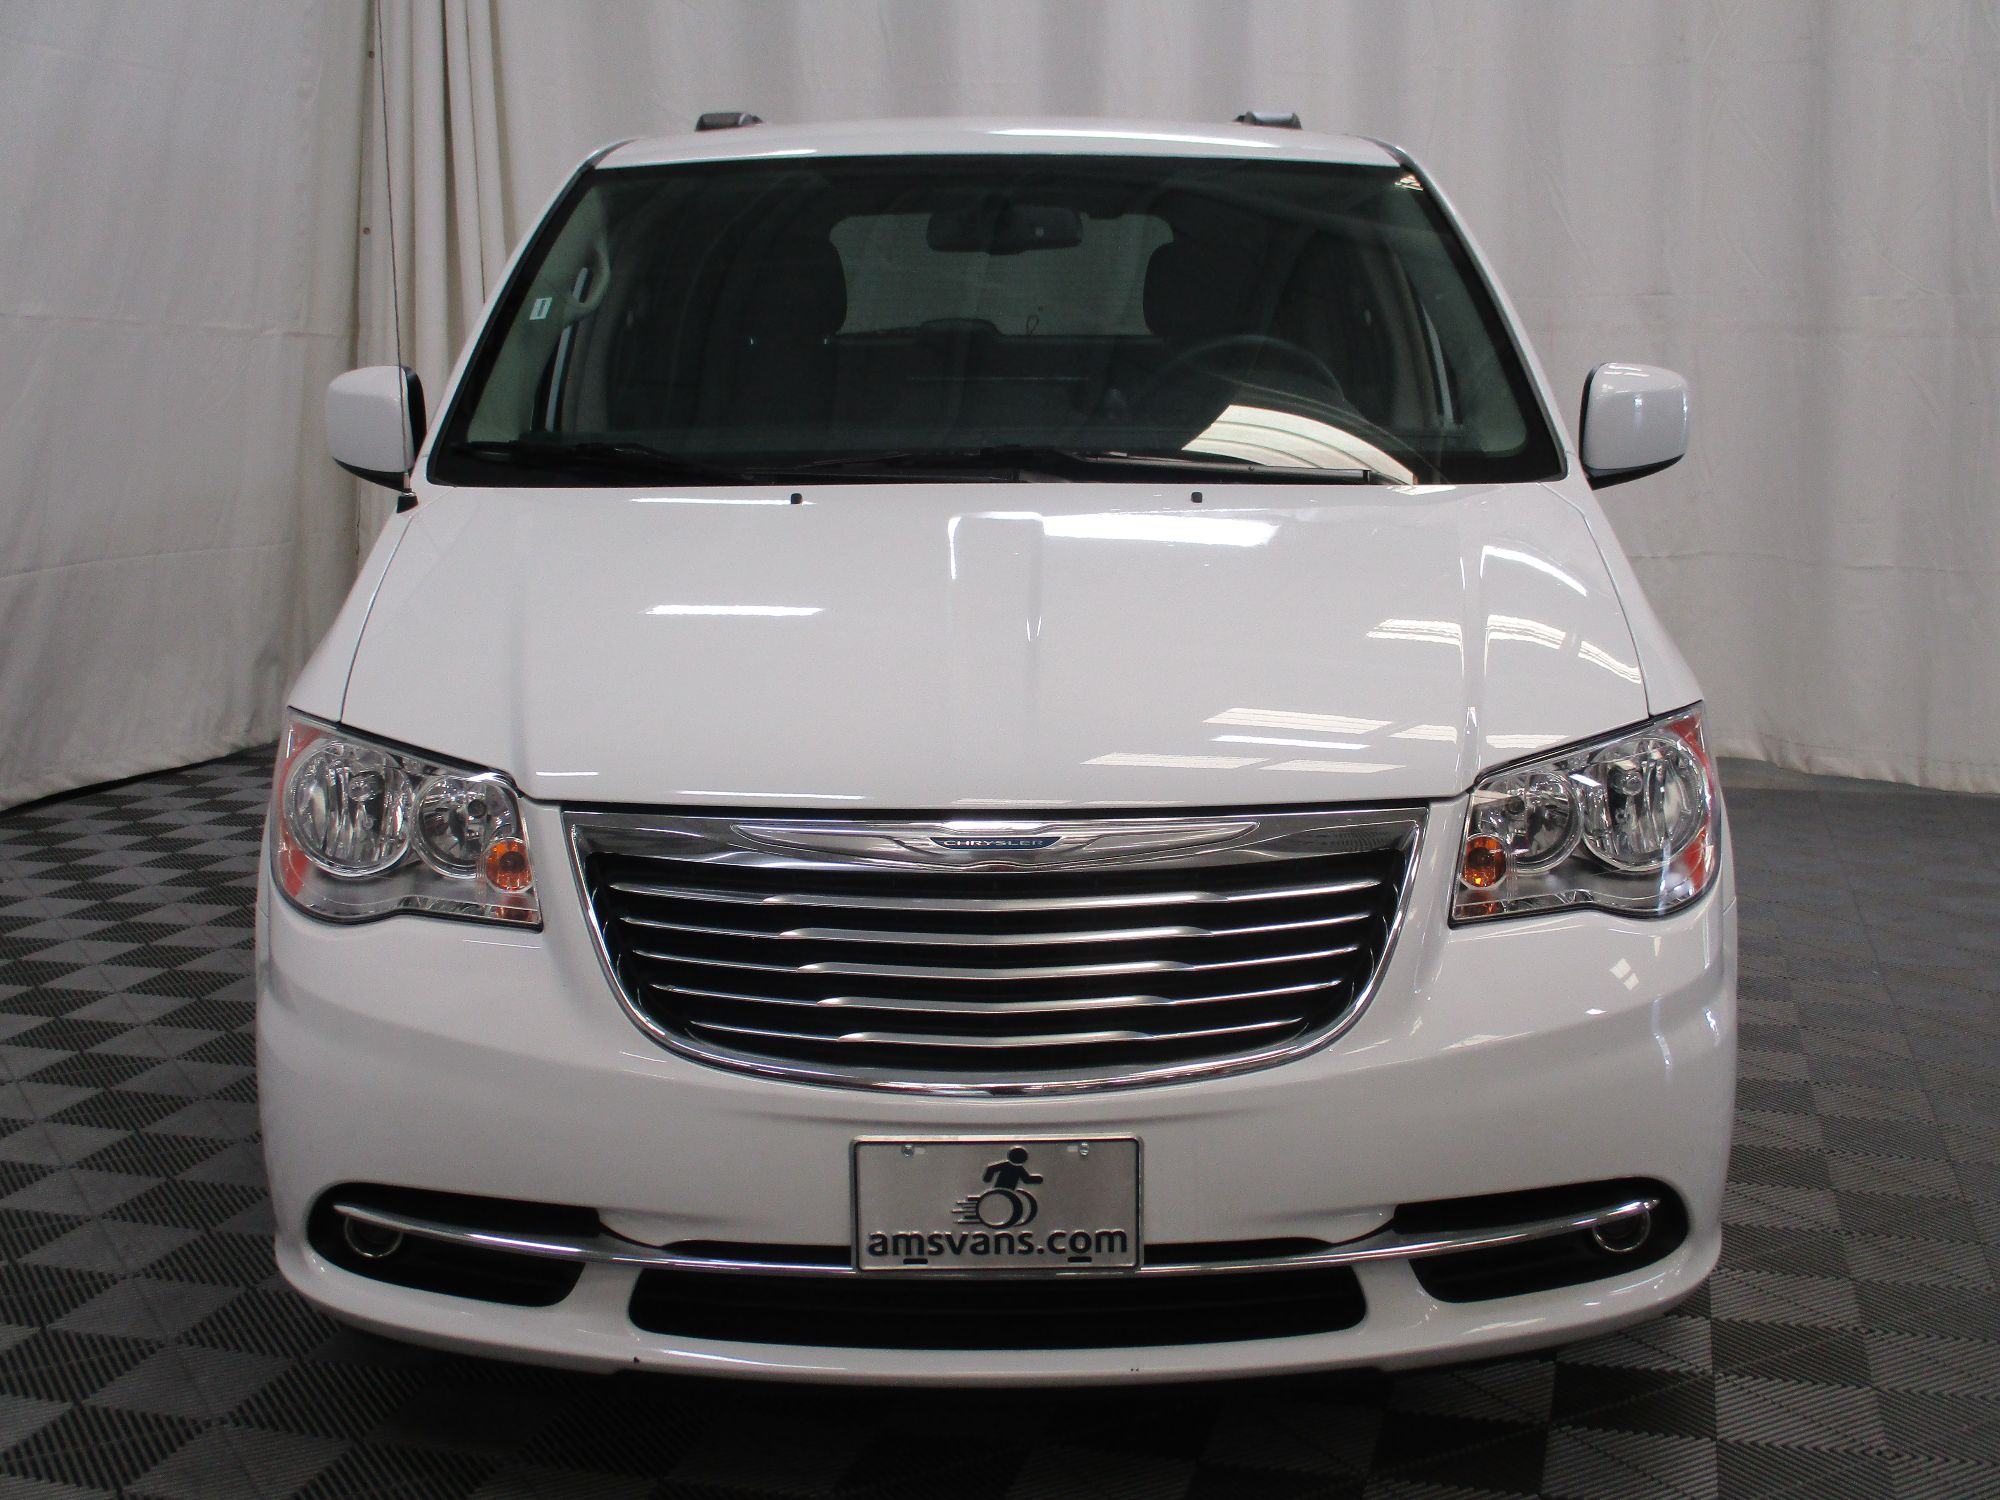 2015 Chrysler Town and Country Touring Wheelchair Van For Sale #17